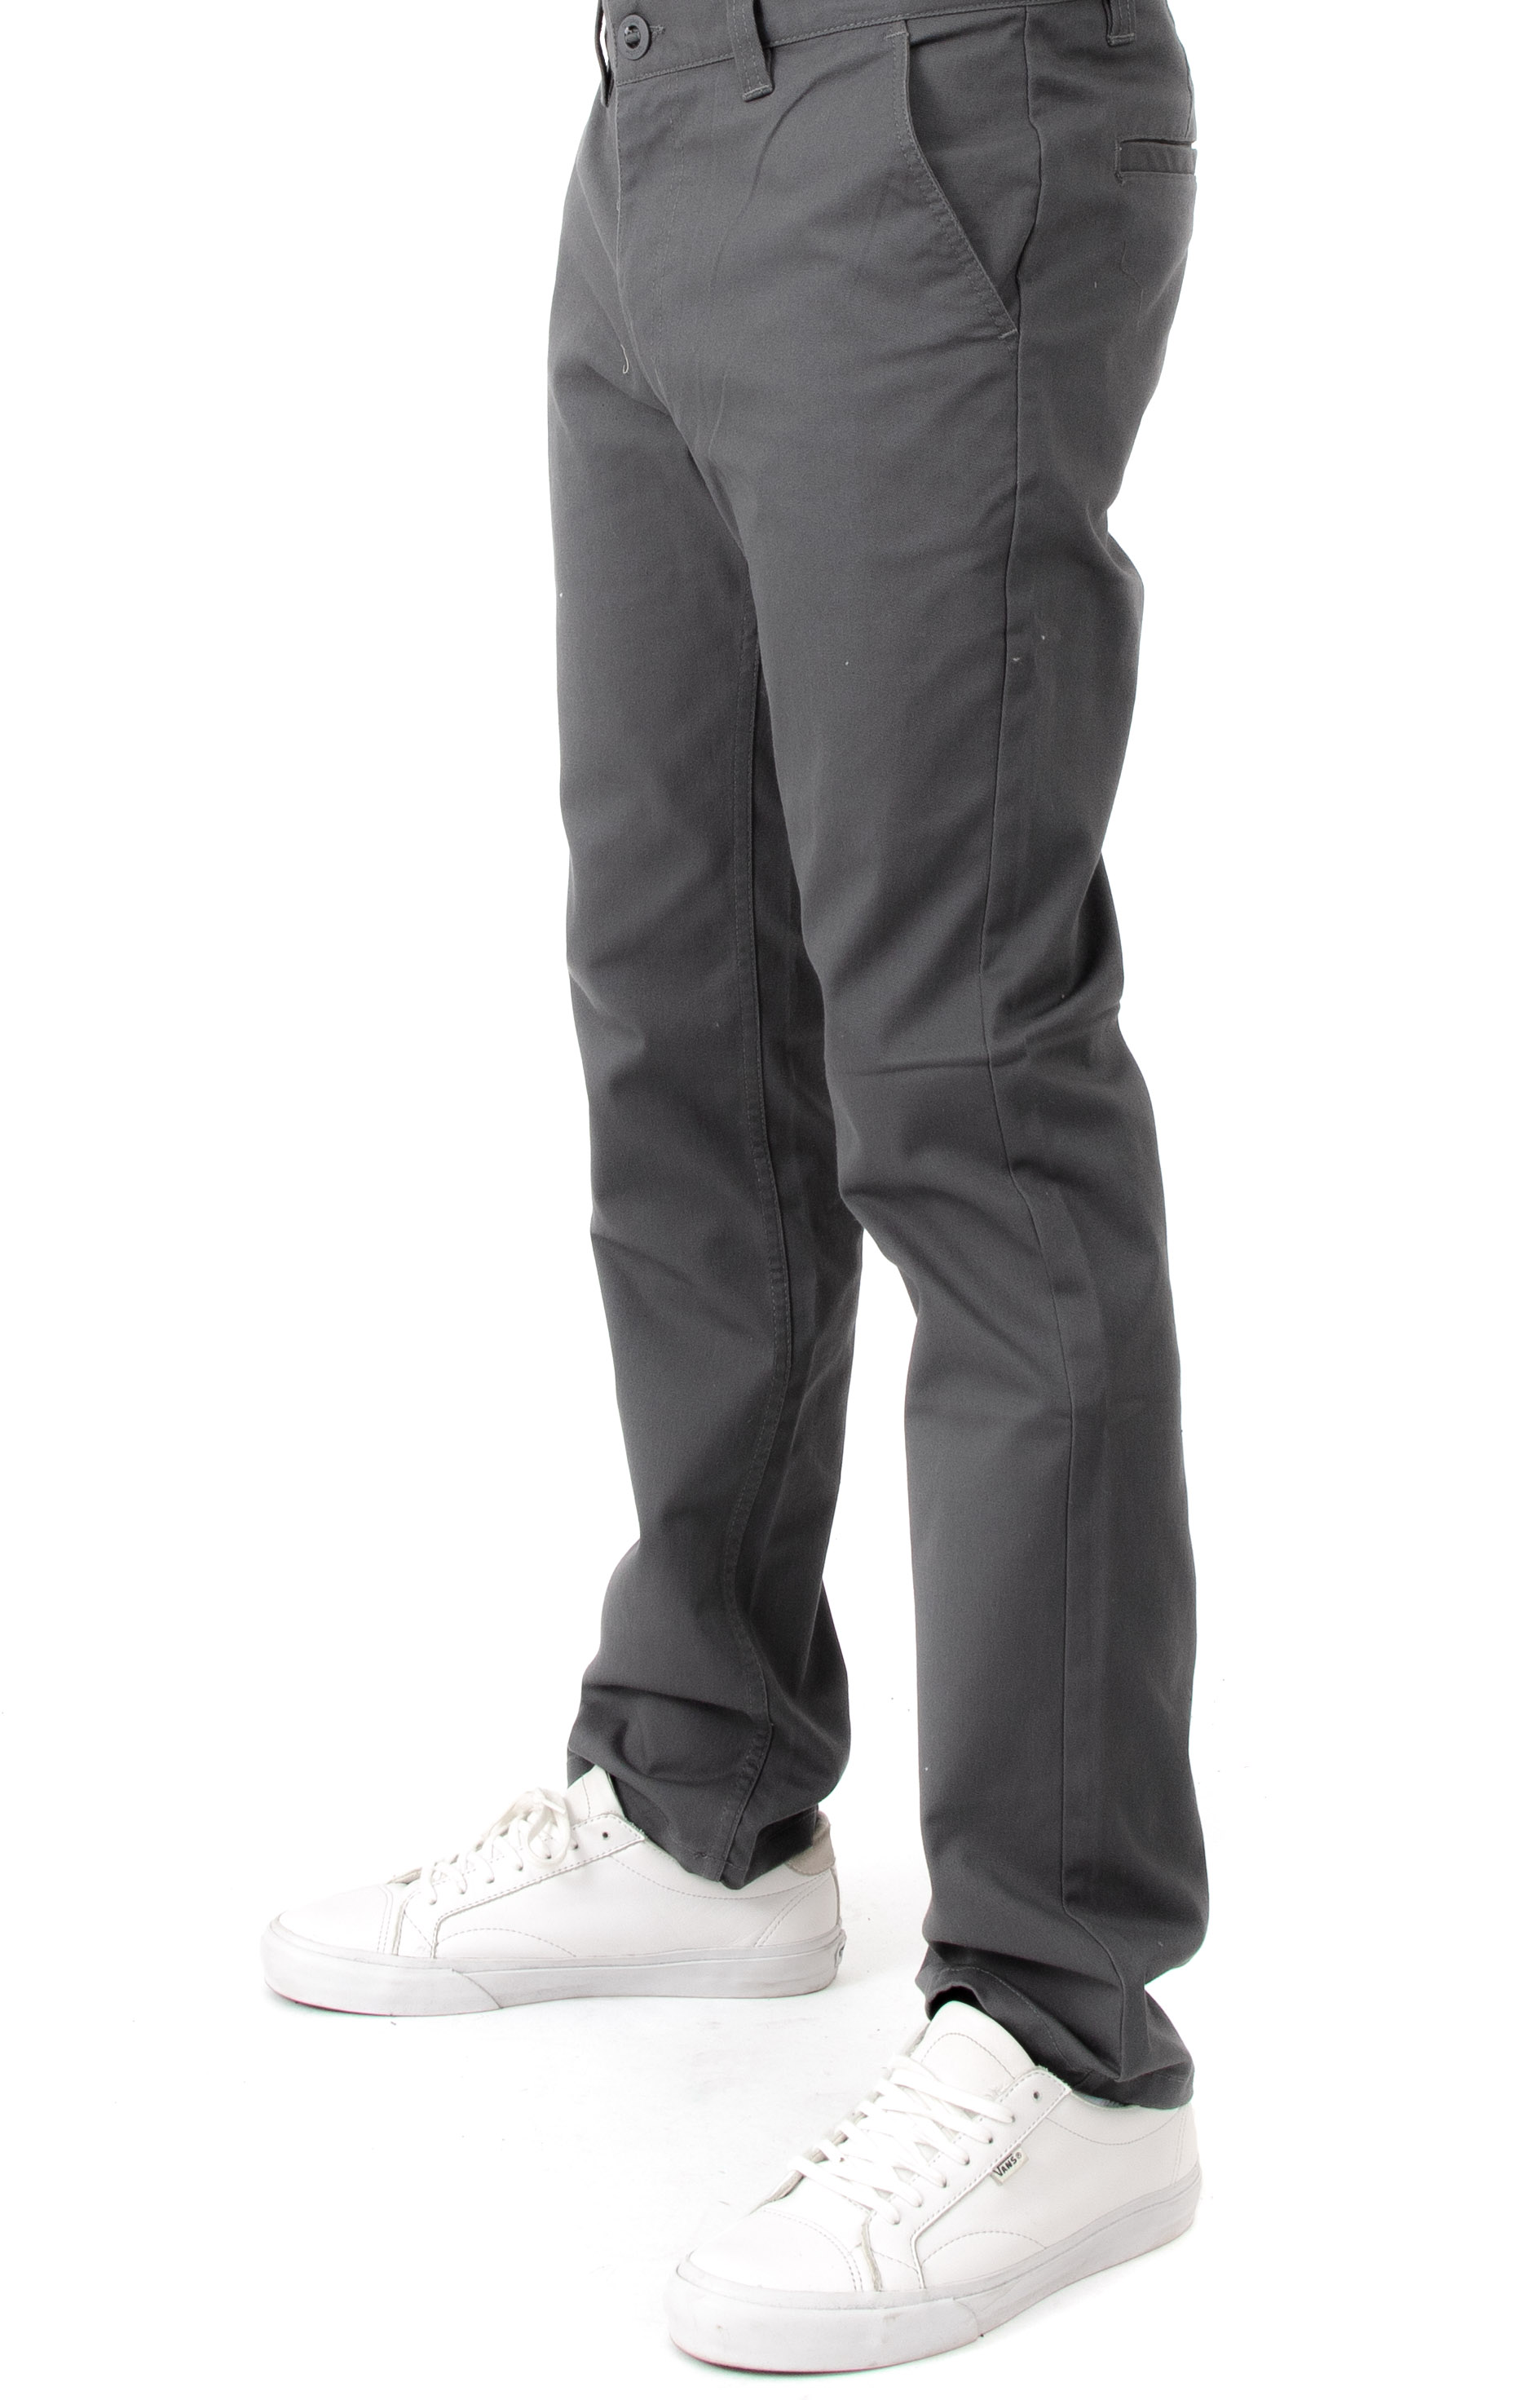 Brixton, Reserve Chino Pants - Charcoal